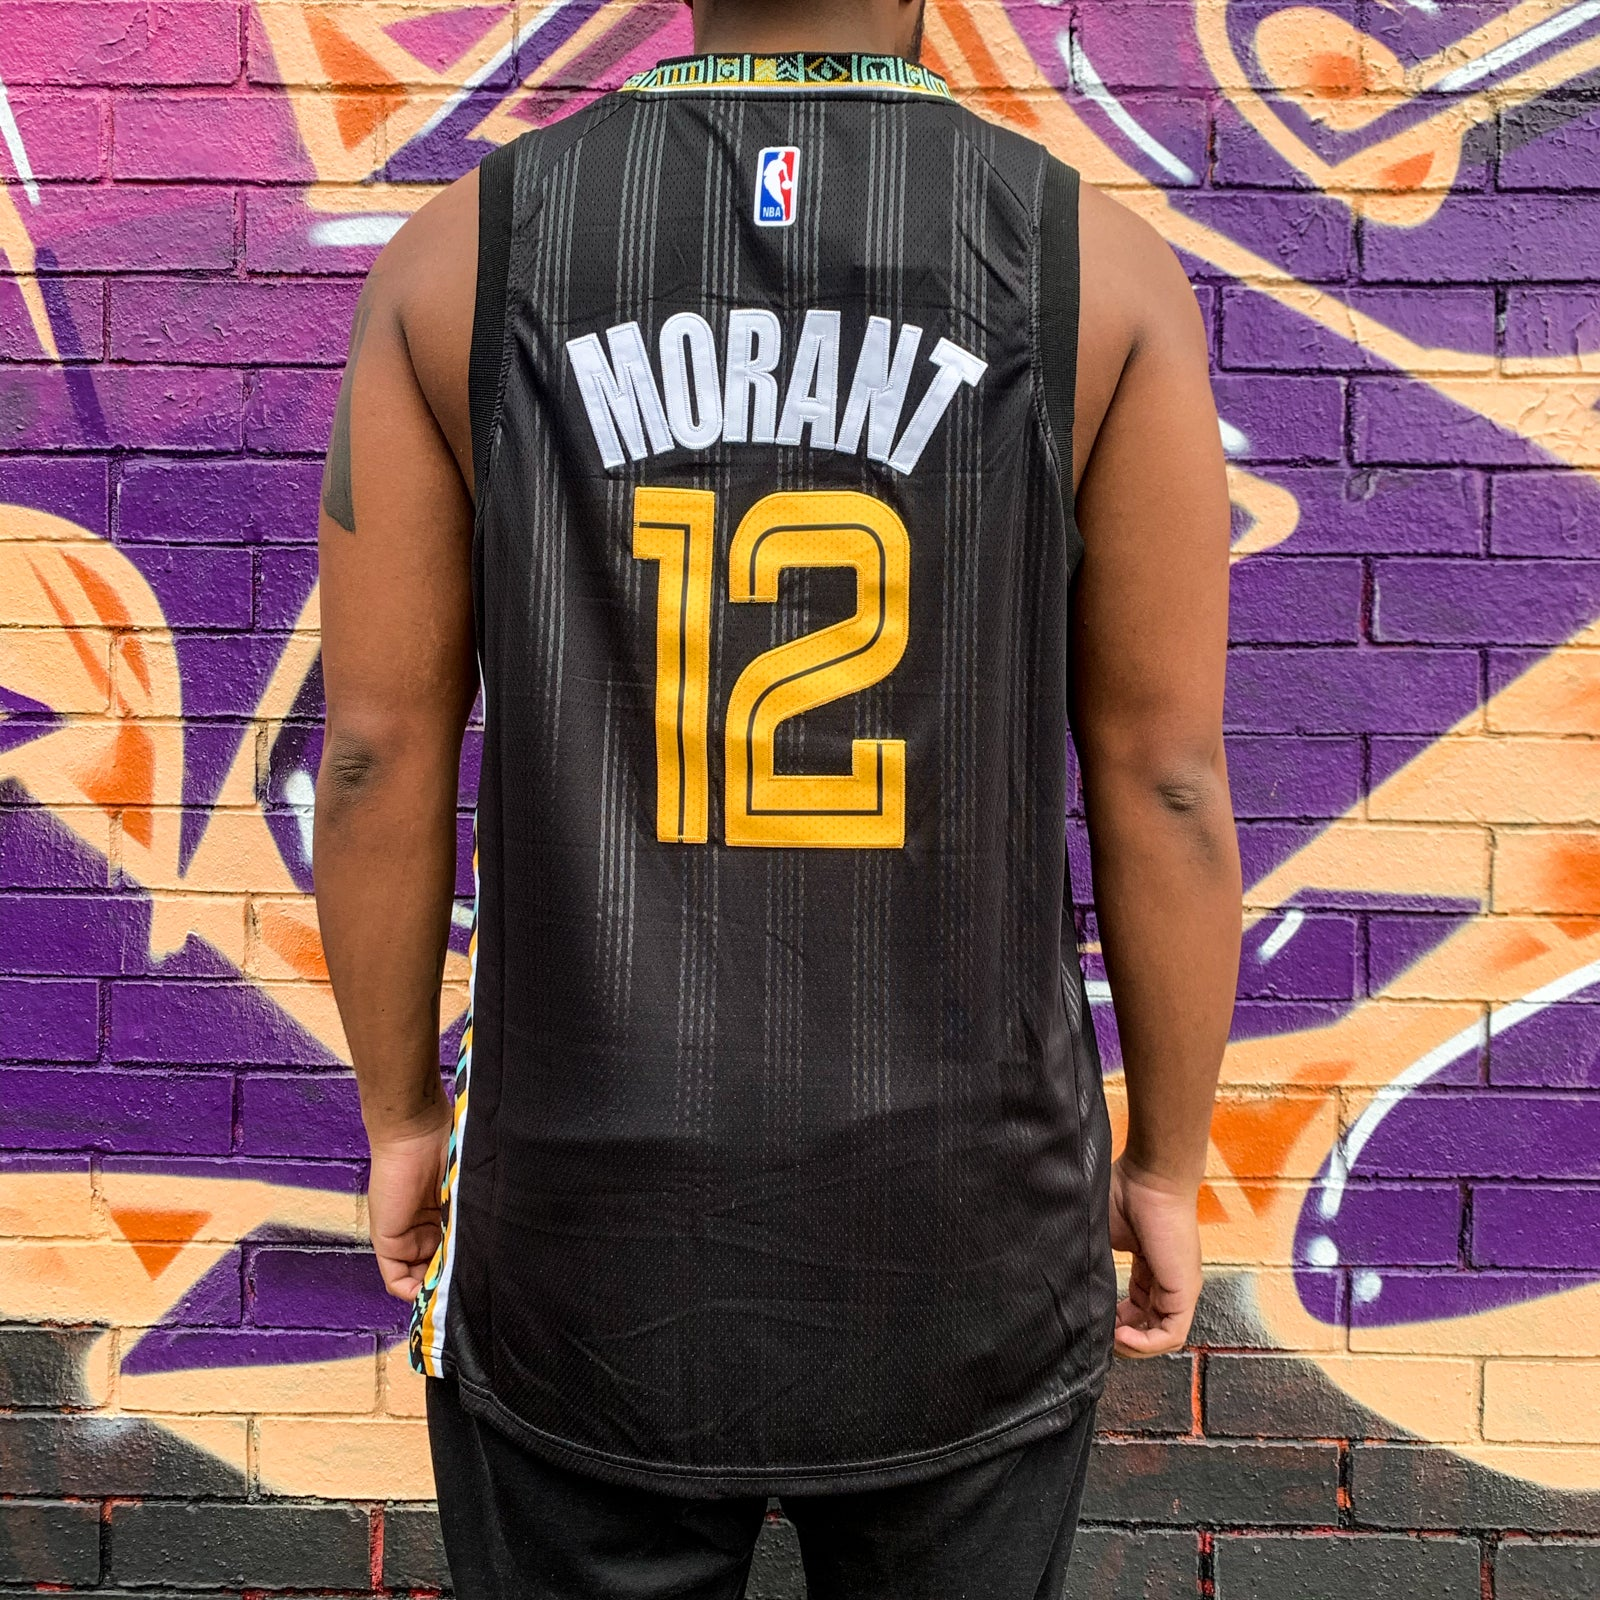 MEMPHIS GRIZZLIES BLACK CITY EDITION JERSEY - JAMEL MORANT 12